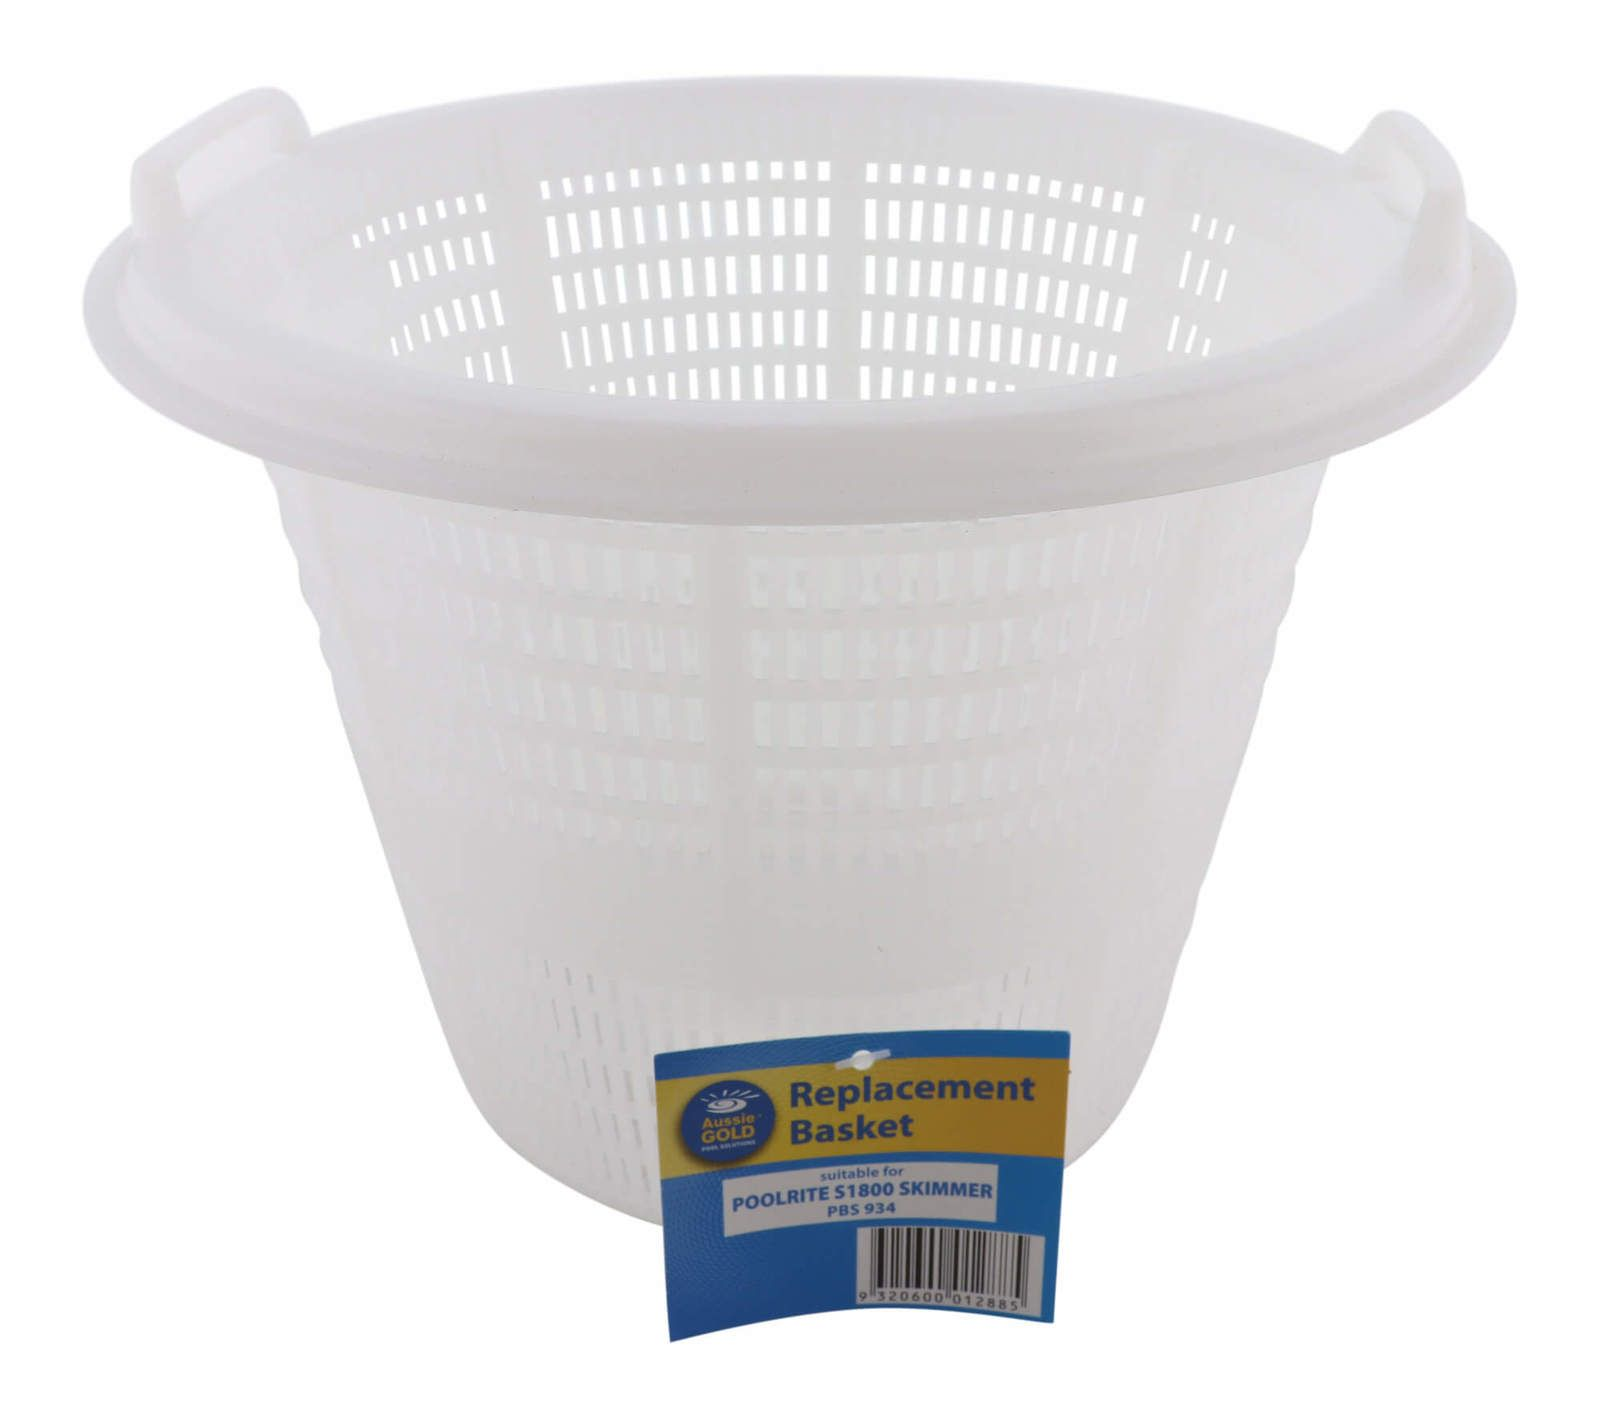 Poolrite s1800 skimmer basket aussie gold swimming pools - Swimming pool skimmer basket covers ...